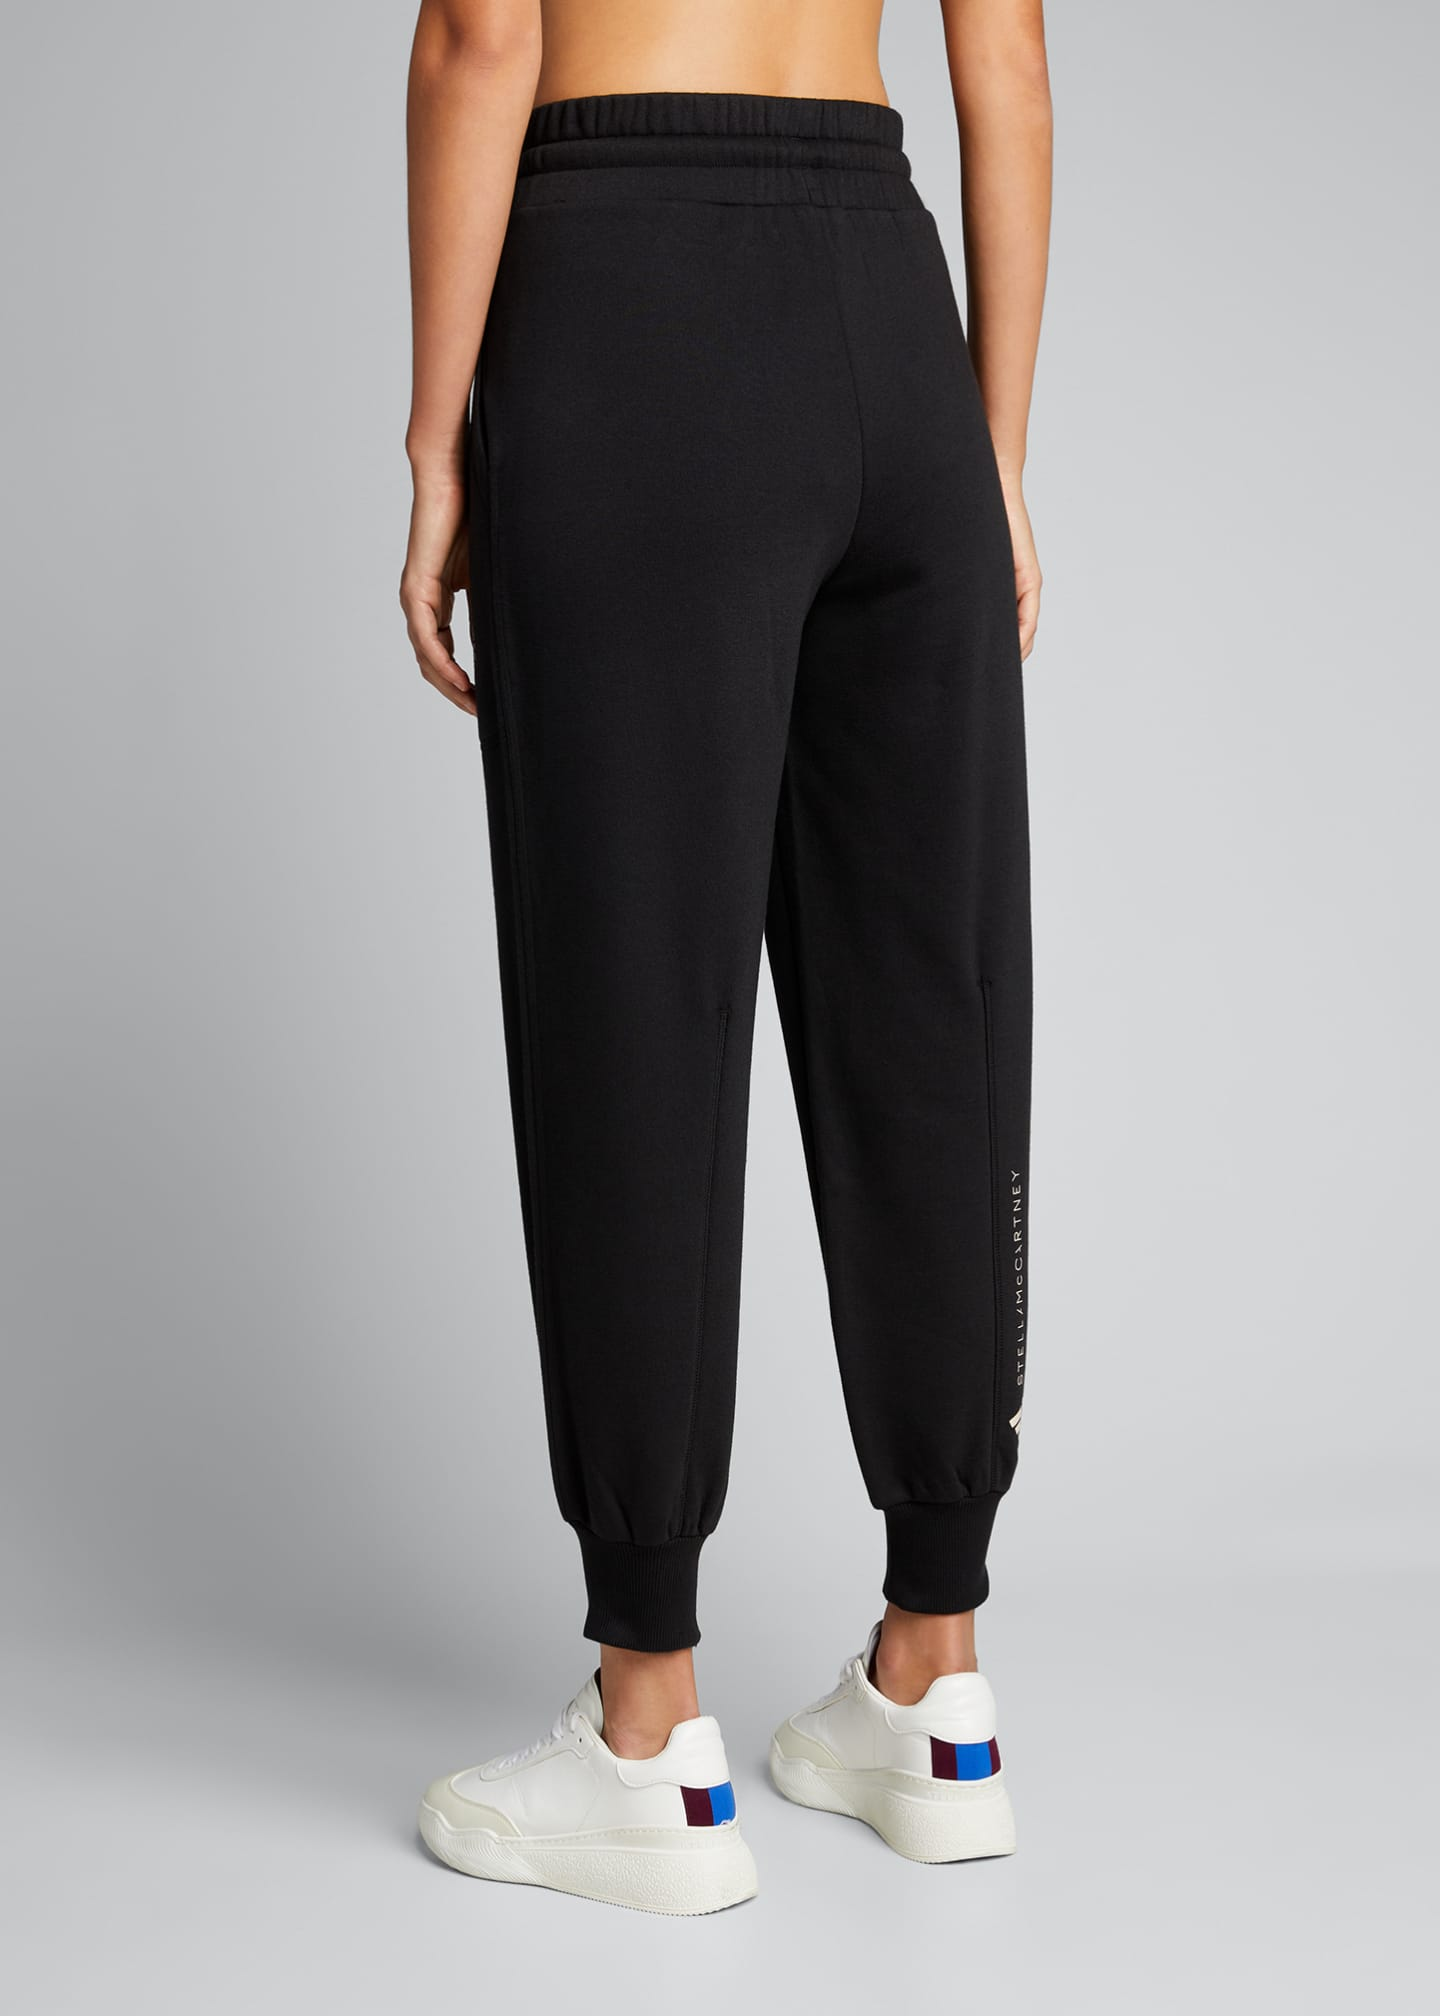 Image 2 of 5: French Terry Sweatpants